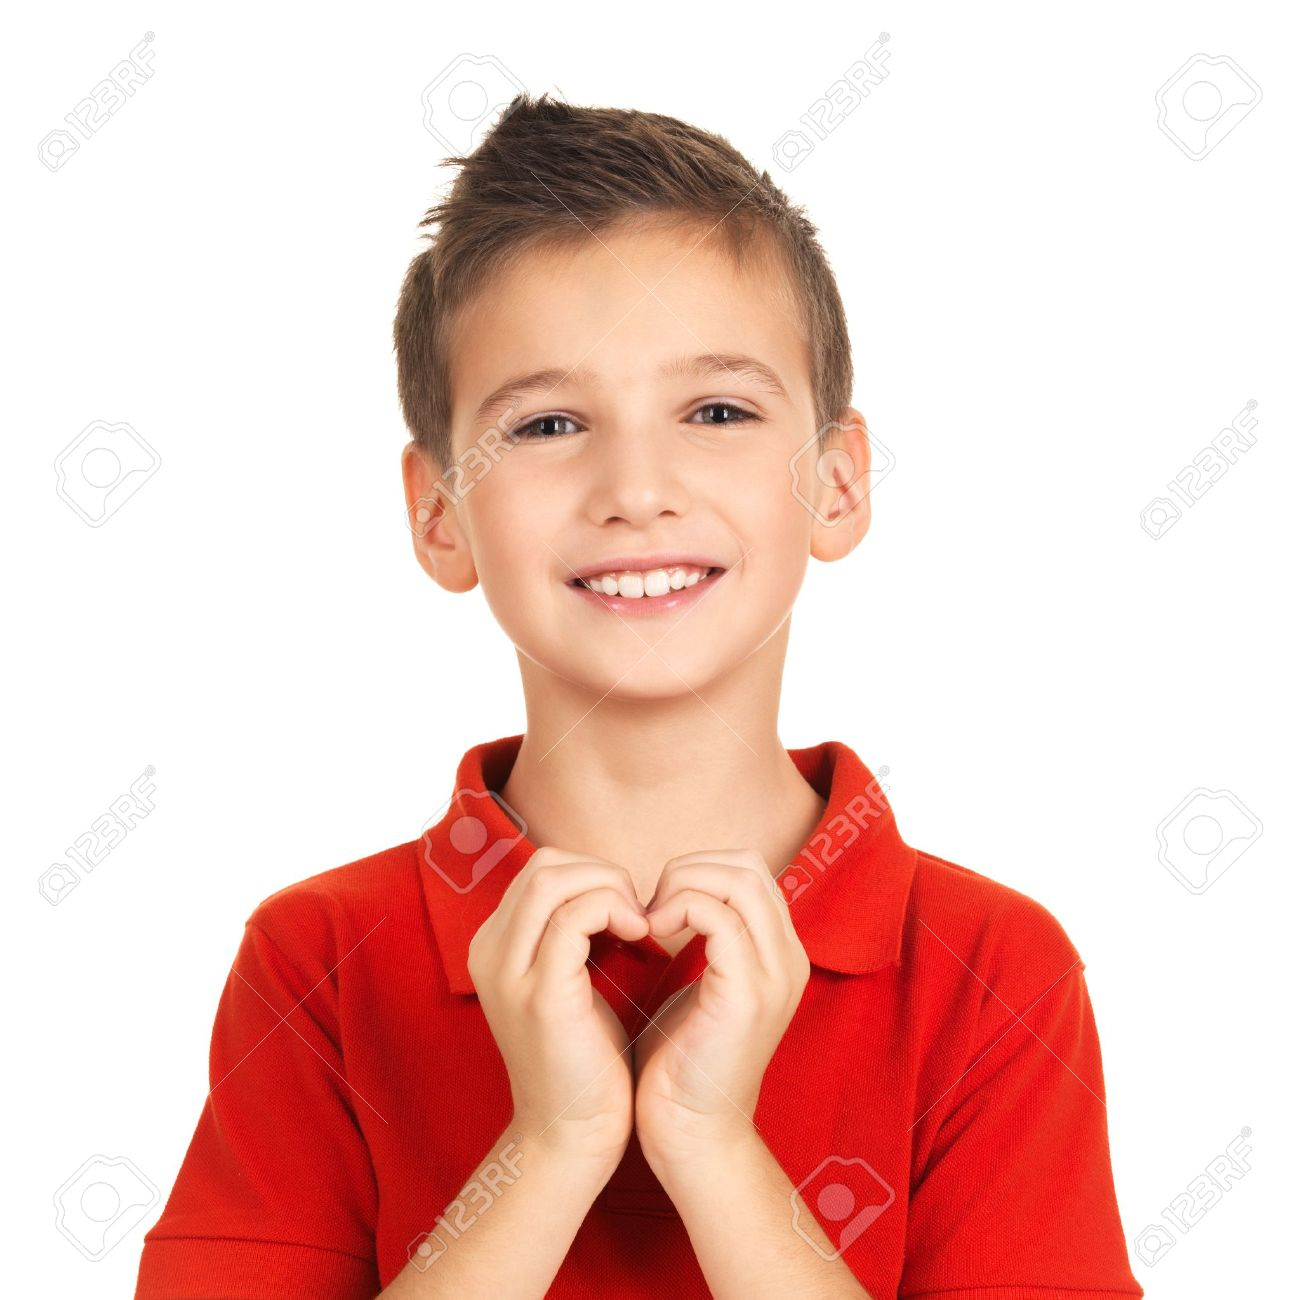 Portrait of happy boy with a heart shape isolated on white background Stock Photo - 16578422